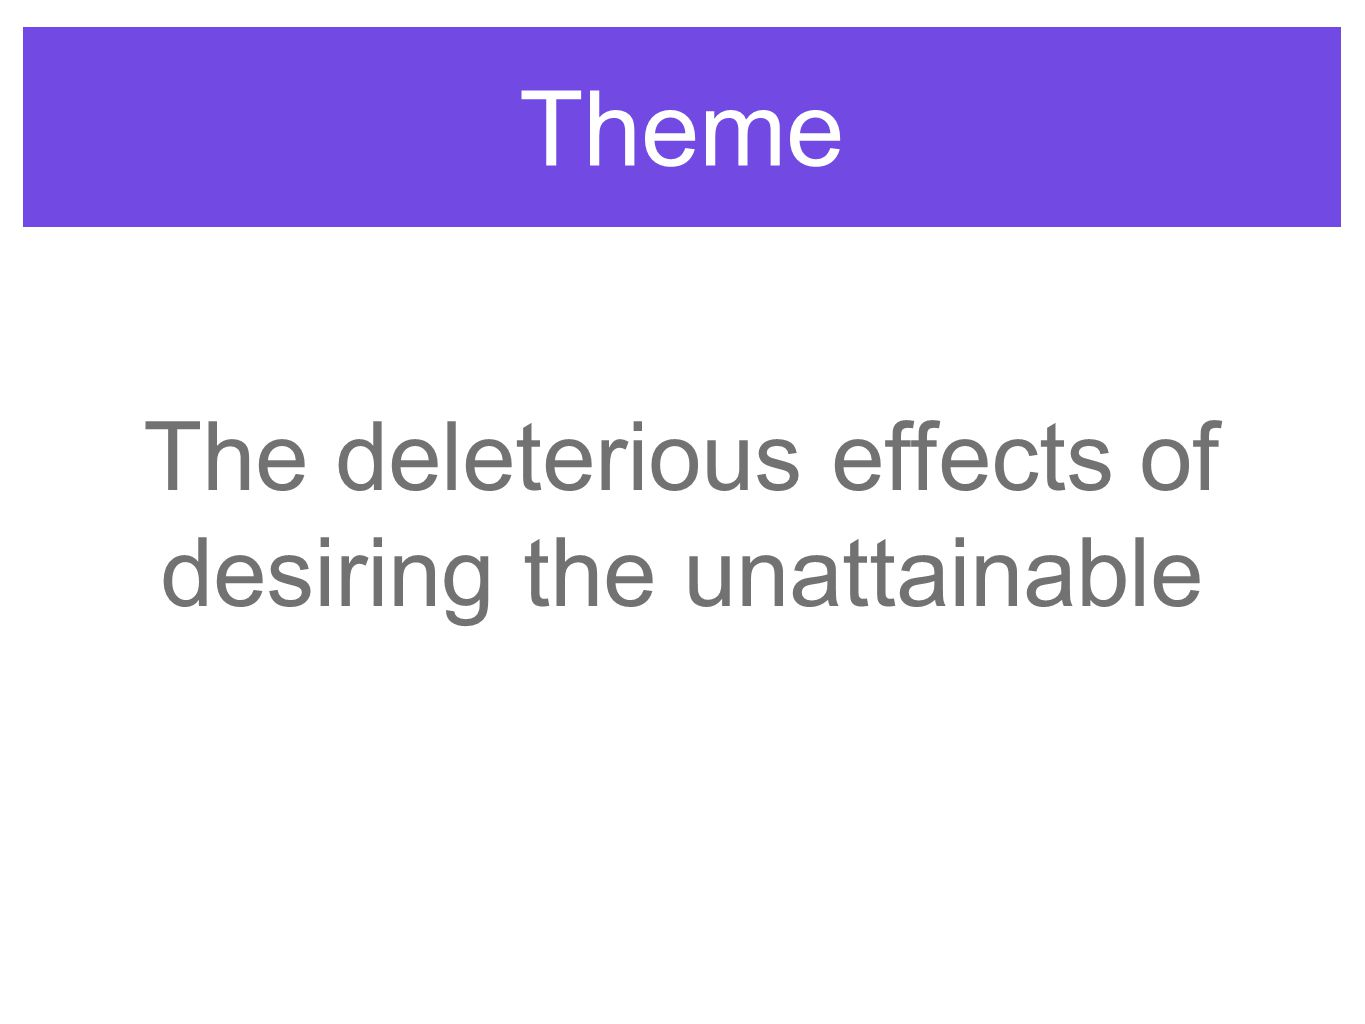 Theme The deleterious effects of desiring the unattainable